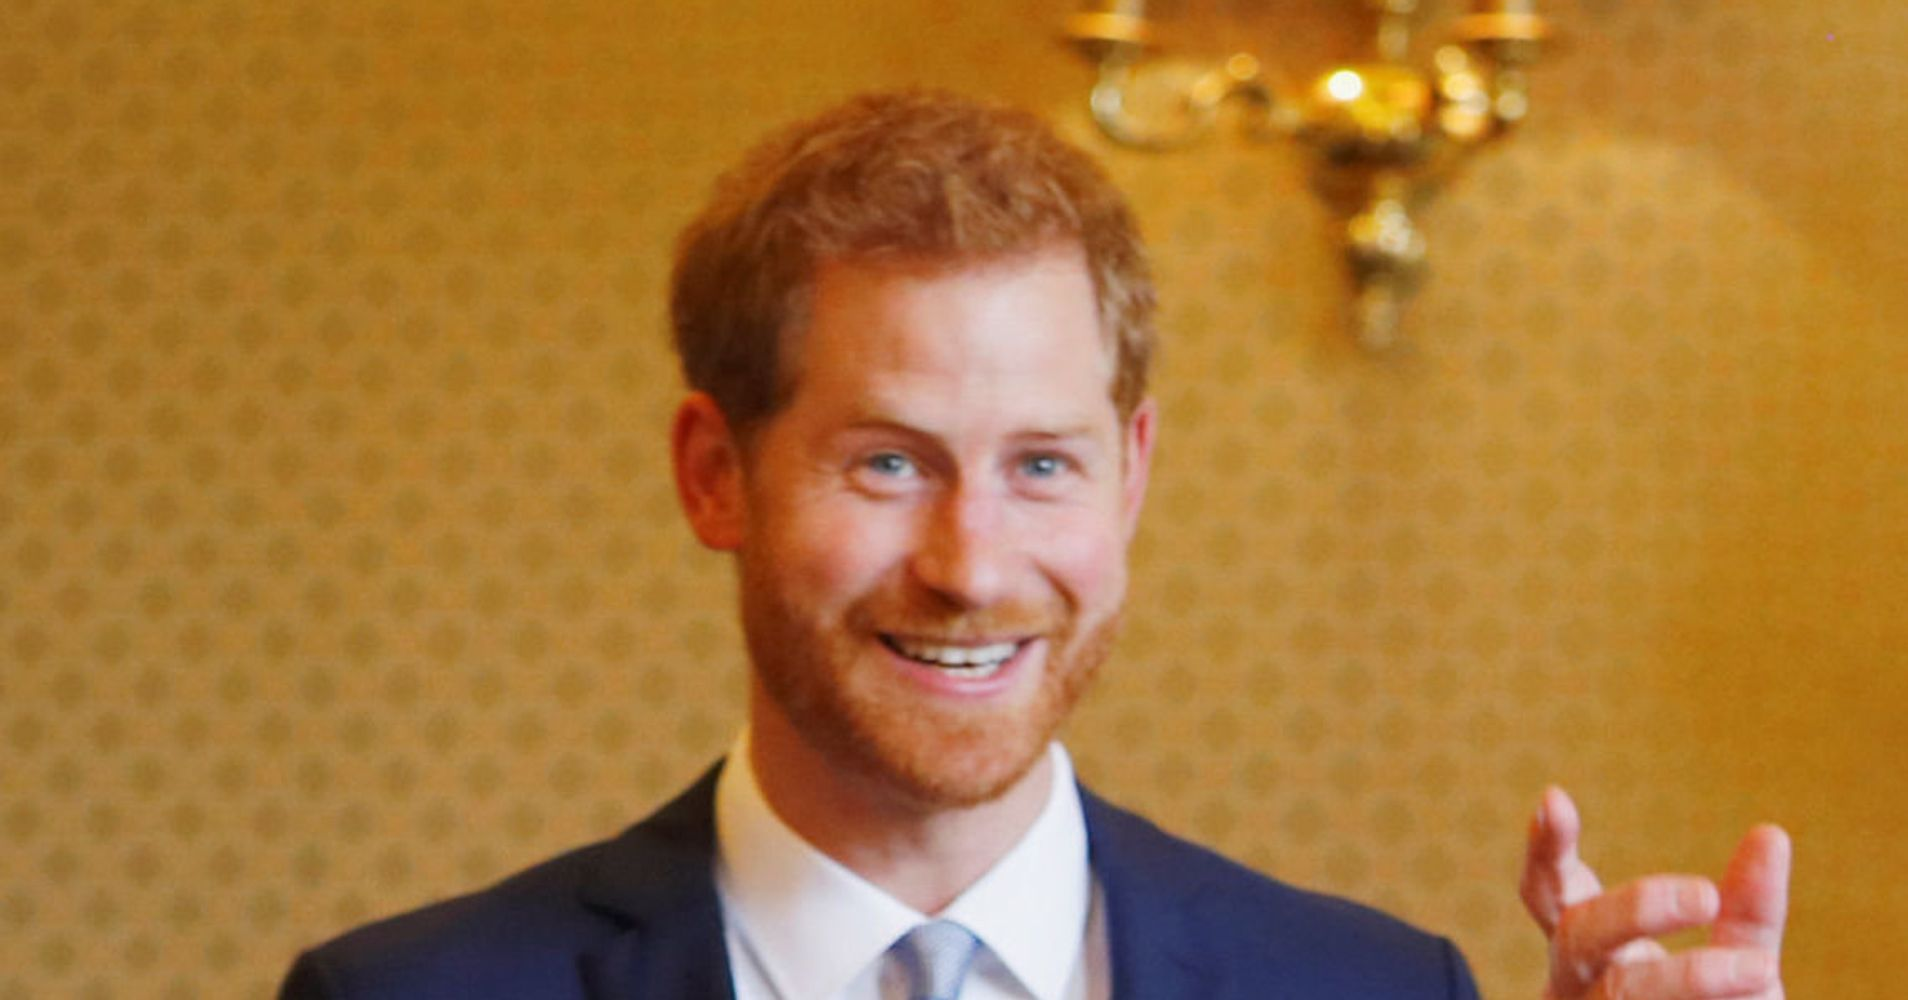 Royal Photographer Says Prince Harry Will Be 'A Great Dad'